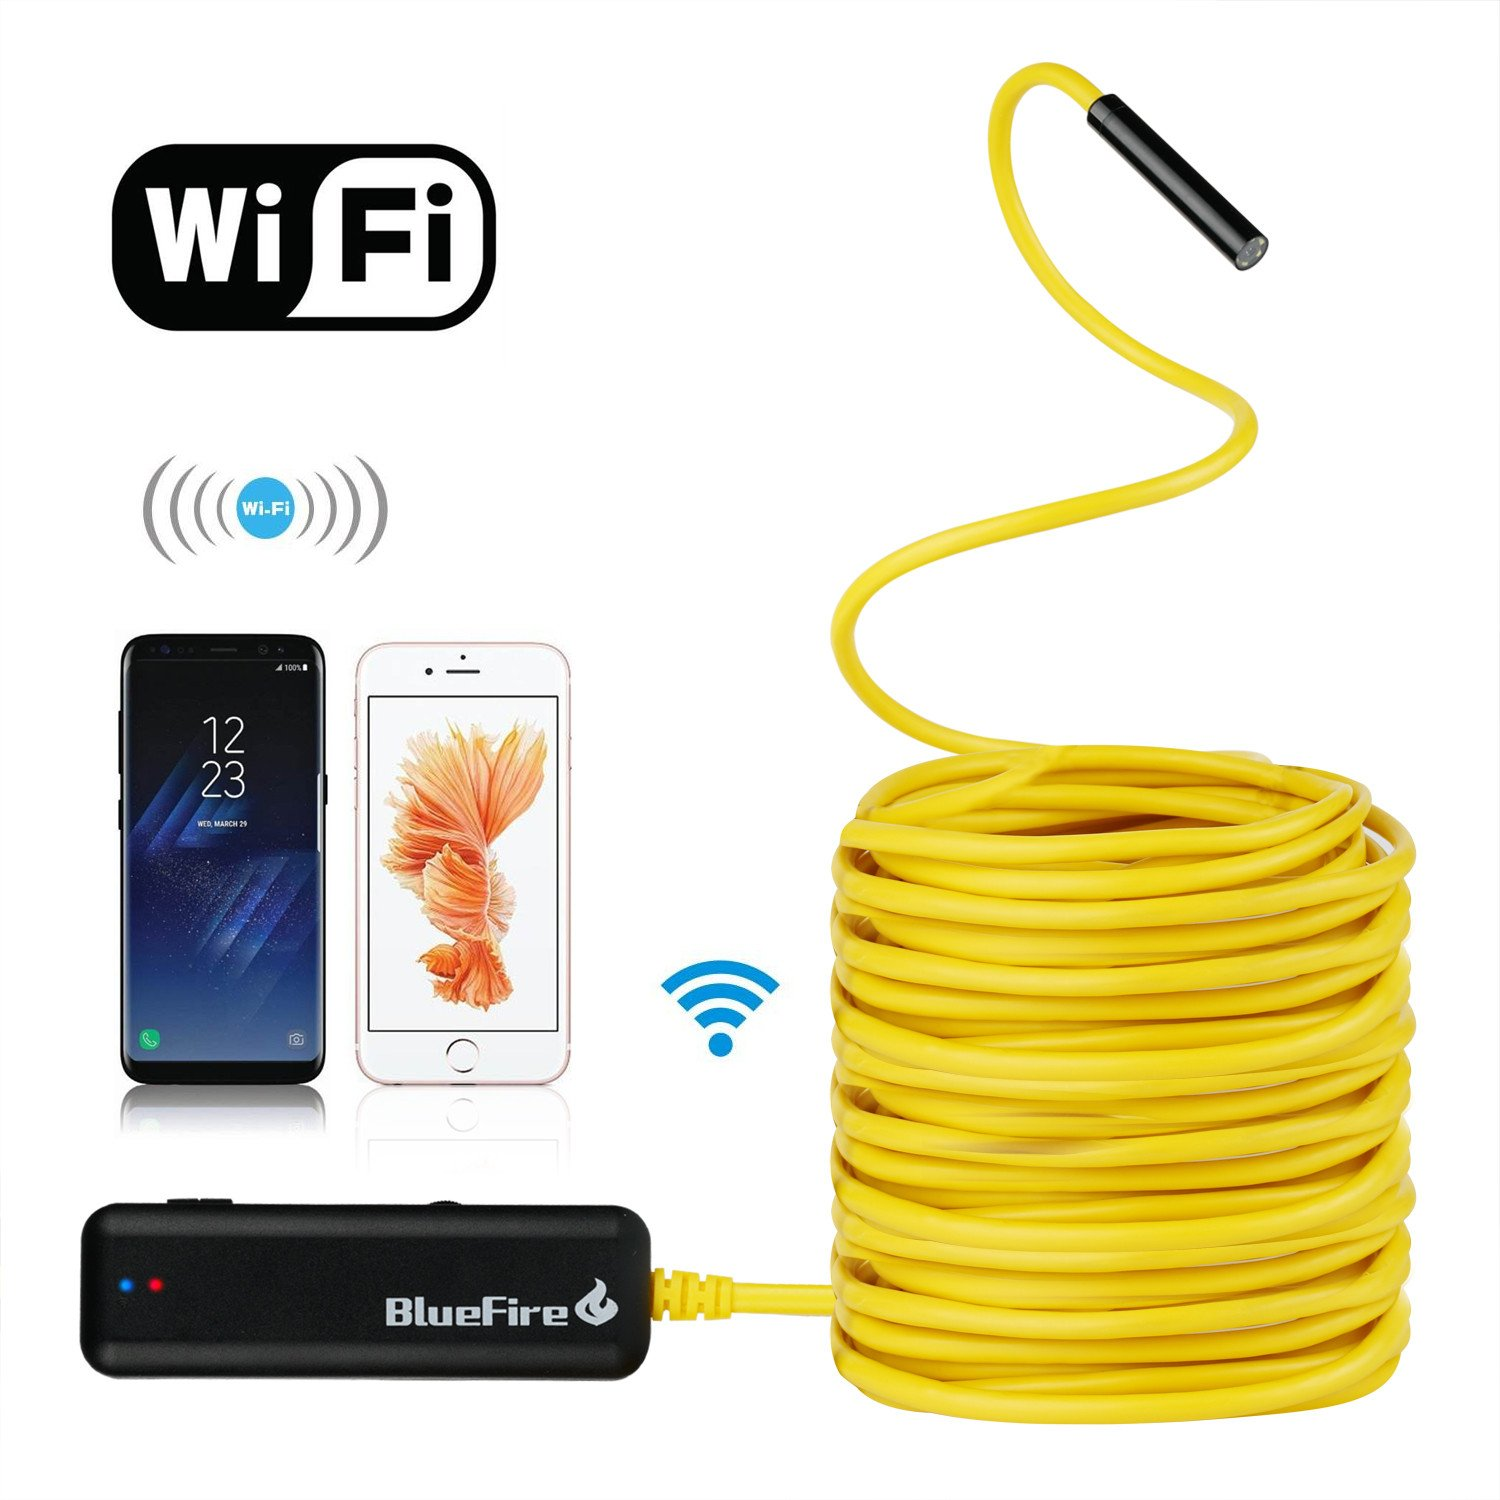 BlueFire Semi-Rigid Flexible Wireless Endoscope